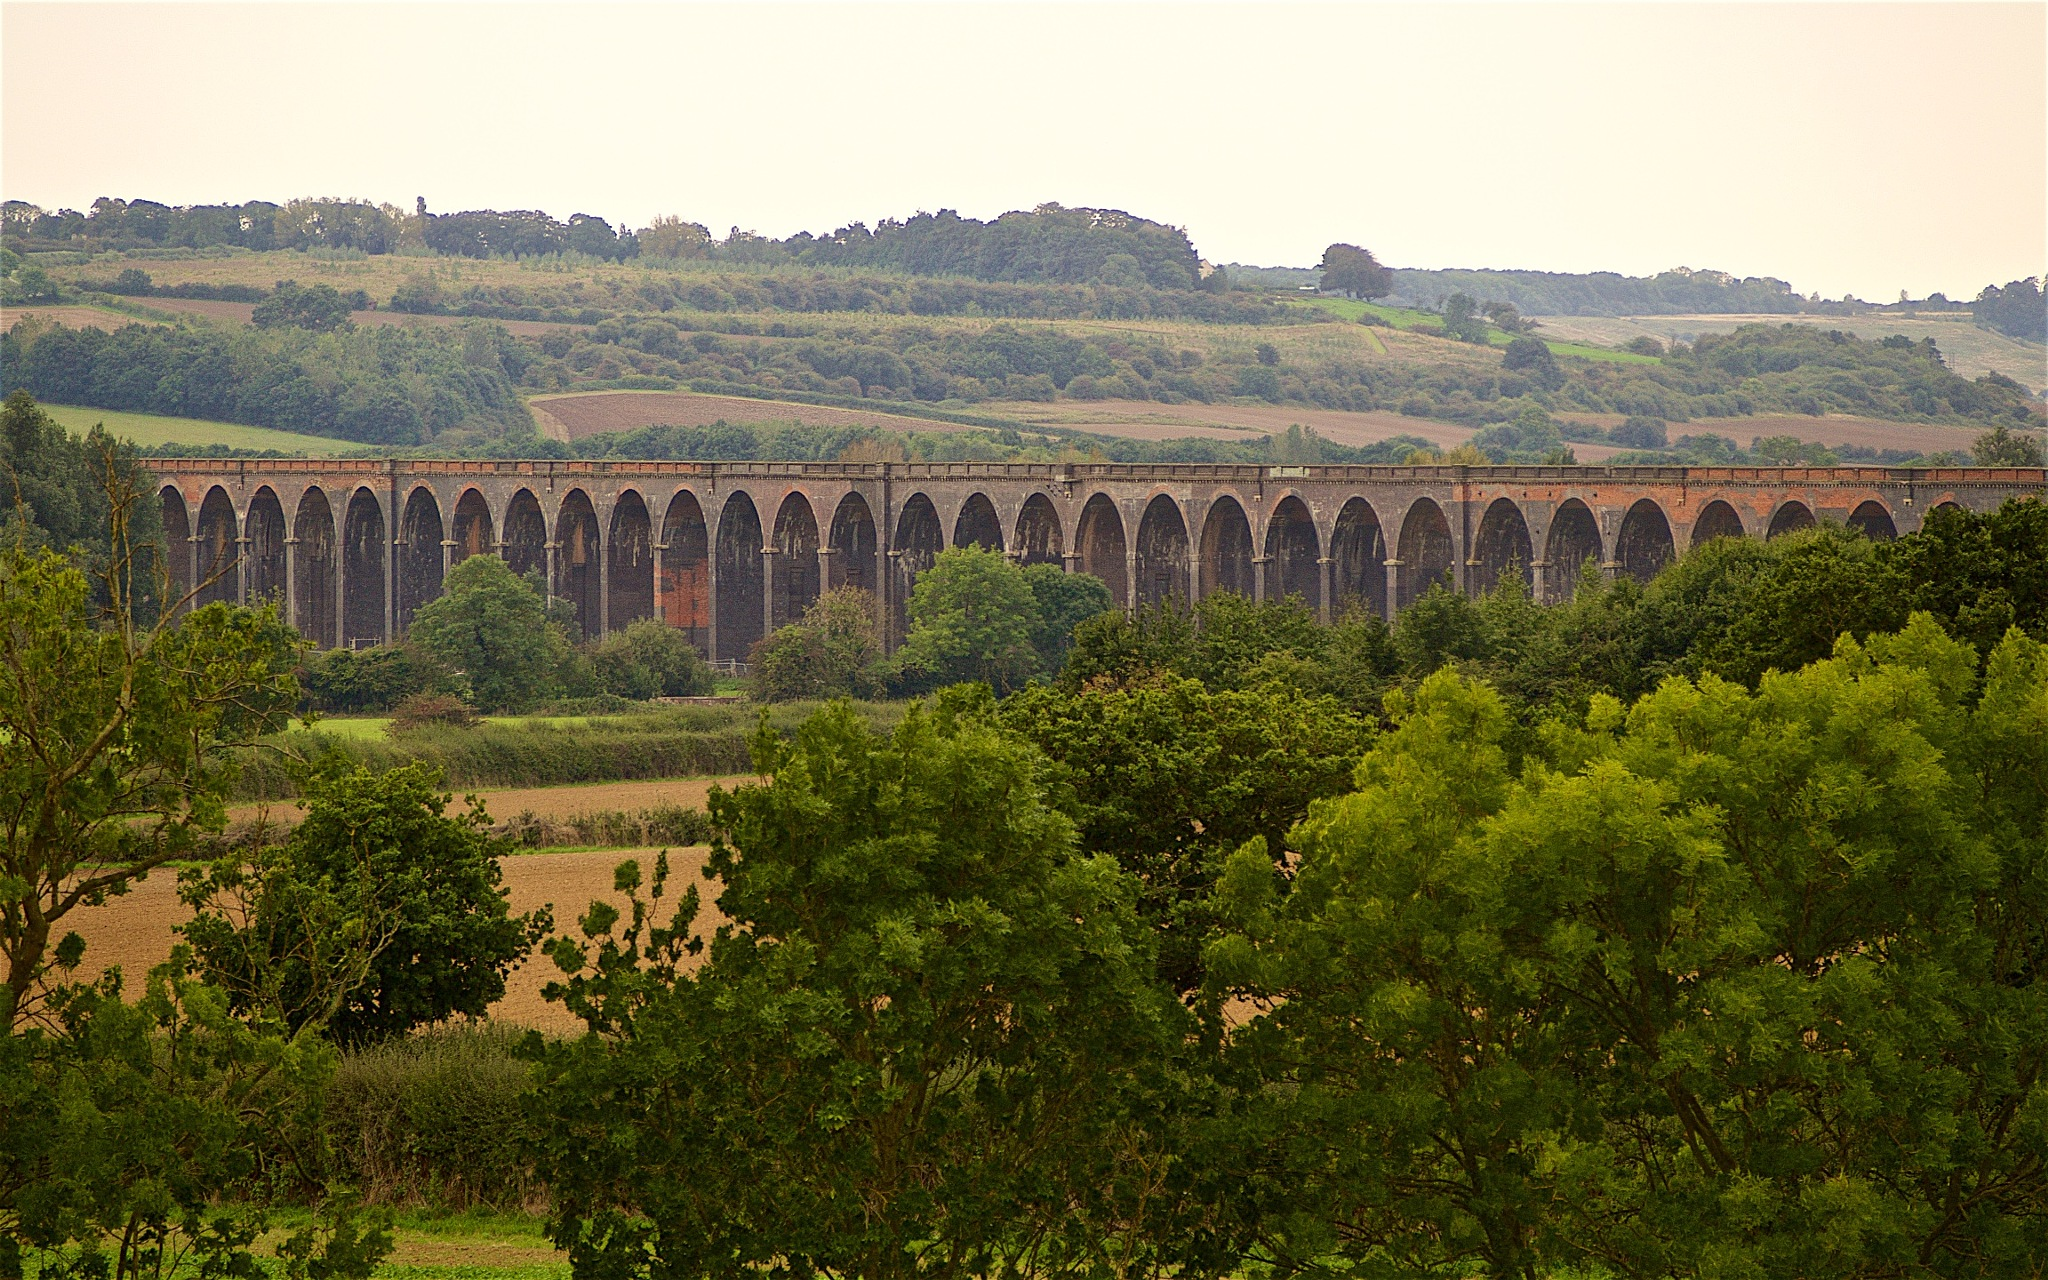 Harringworth Viaduct by Tony Otley